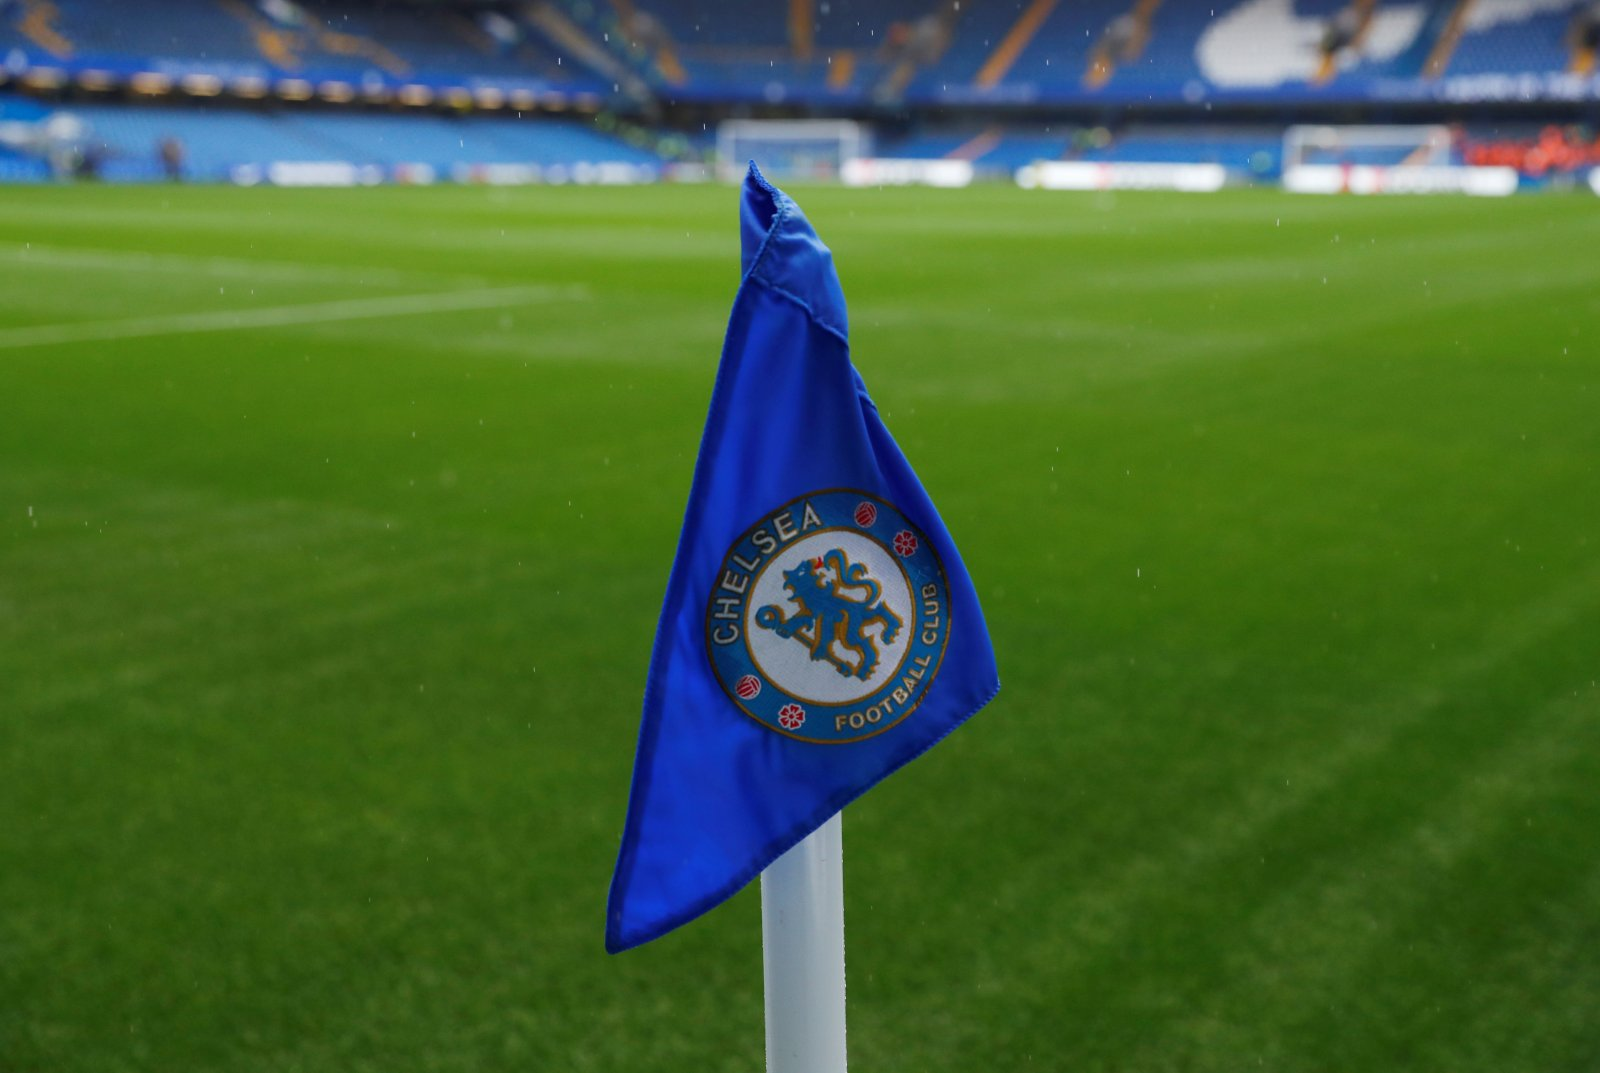 Chelsea corner flag at Stamford Bridge